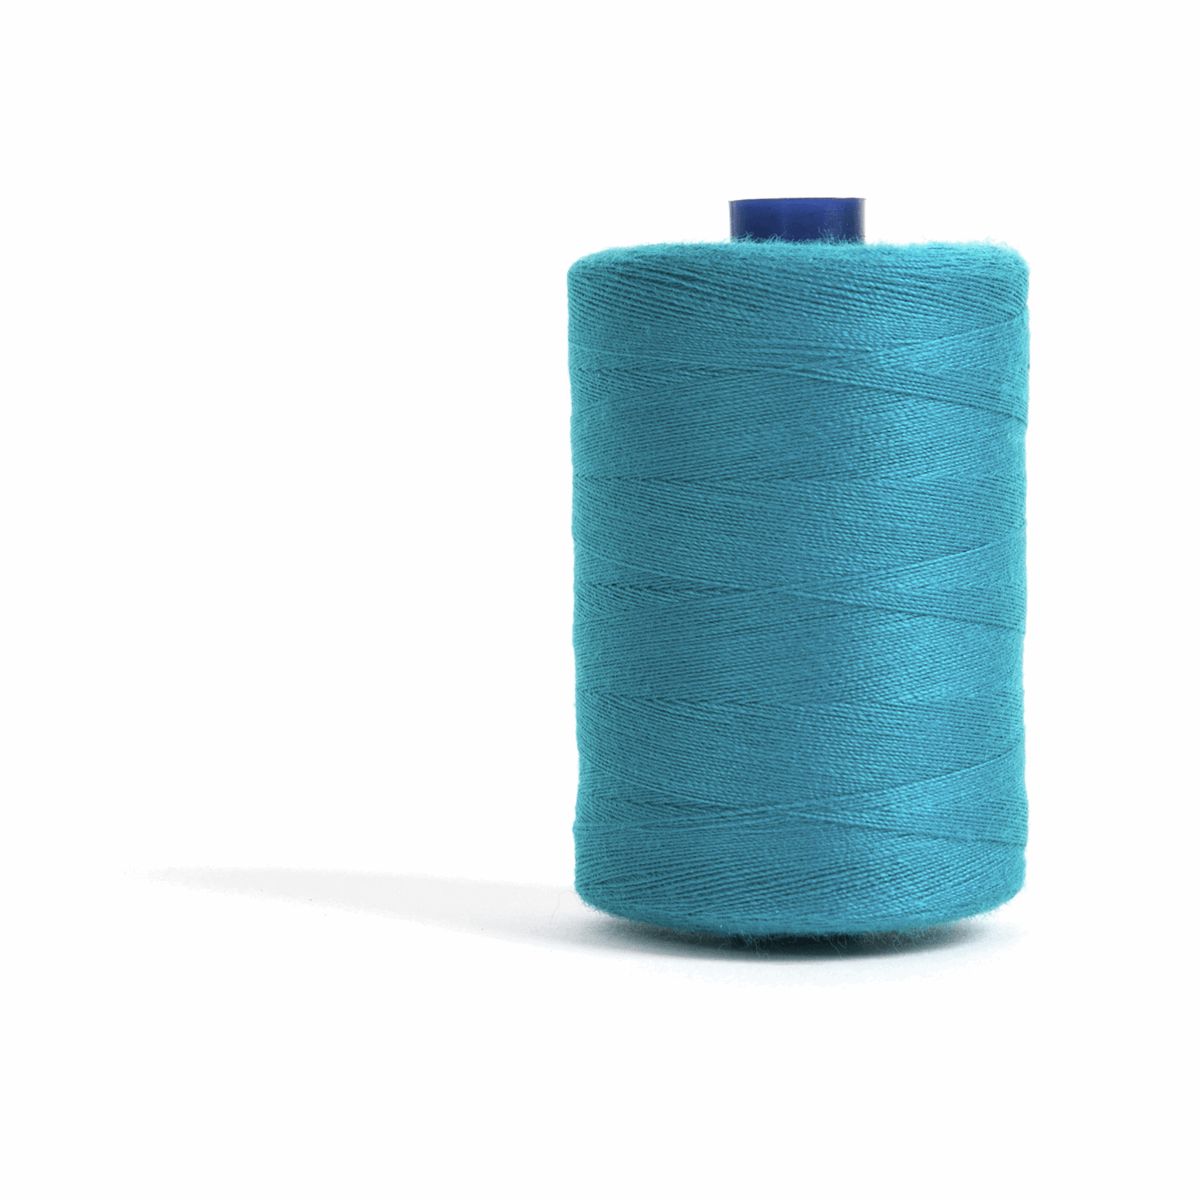 Picture of Sewing and Overlocking Thread: 5 x 1,000m: Teal